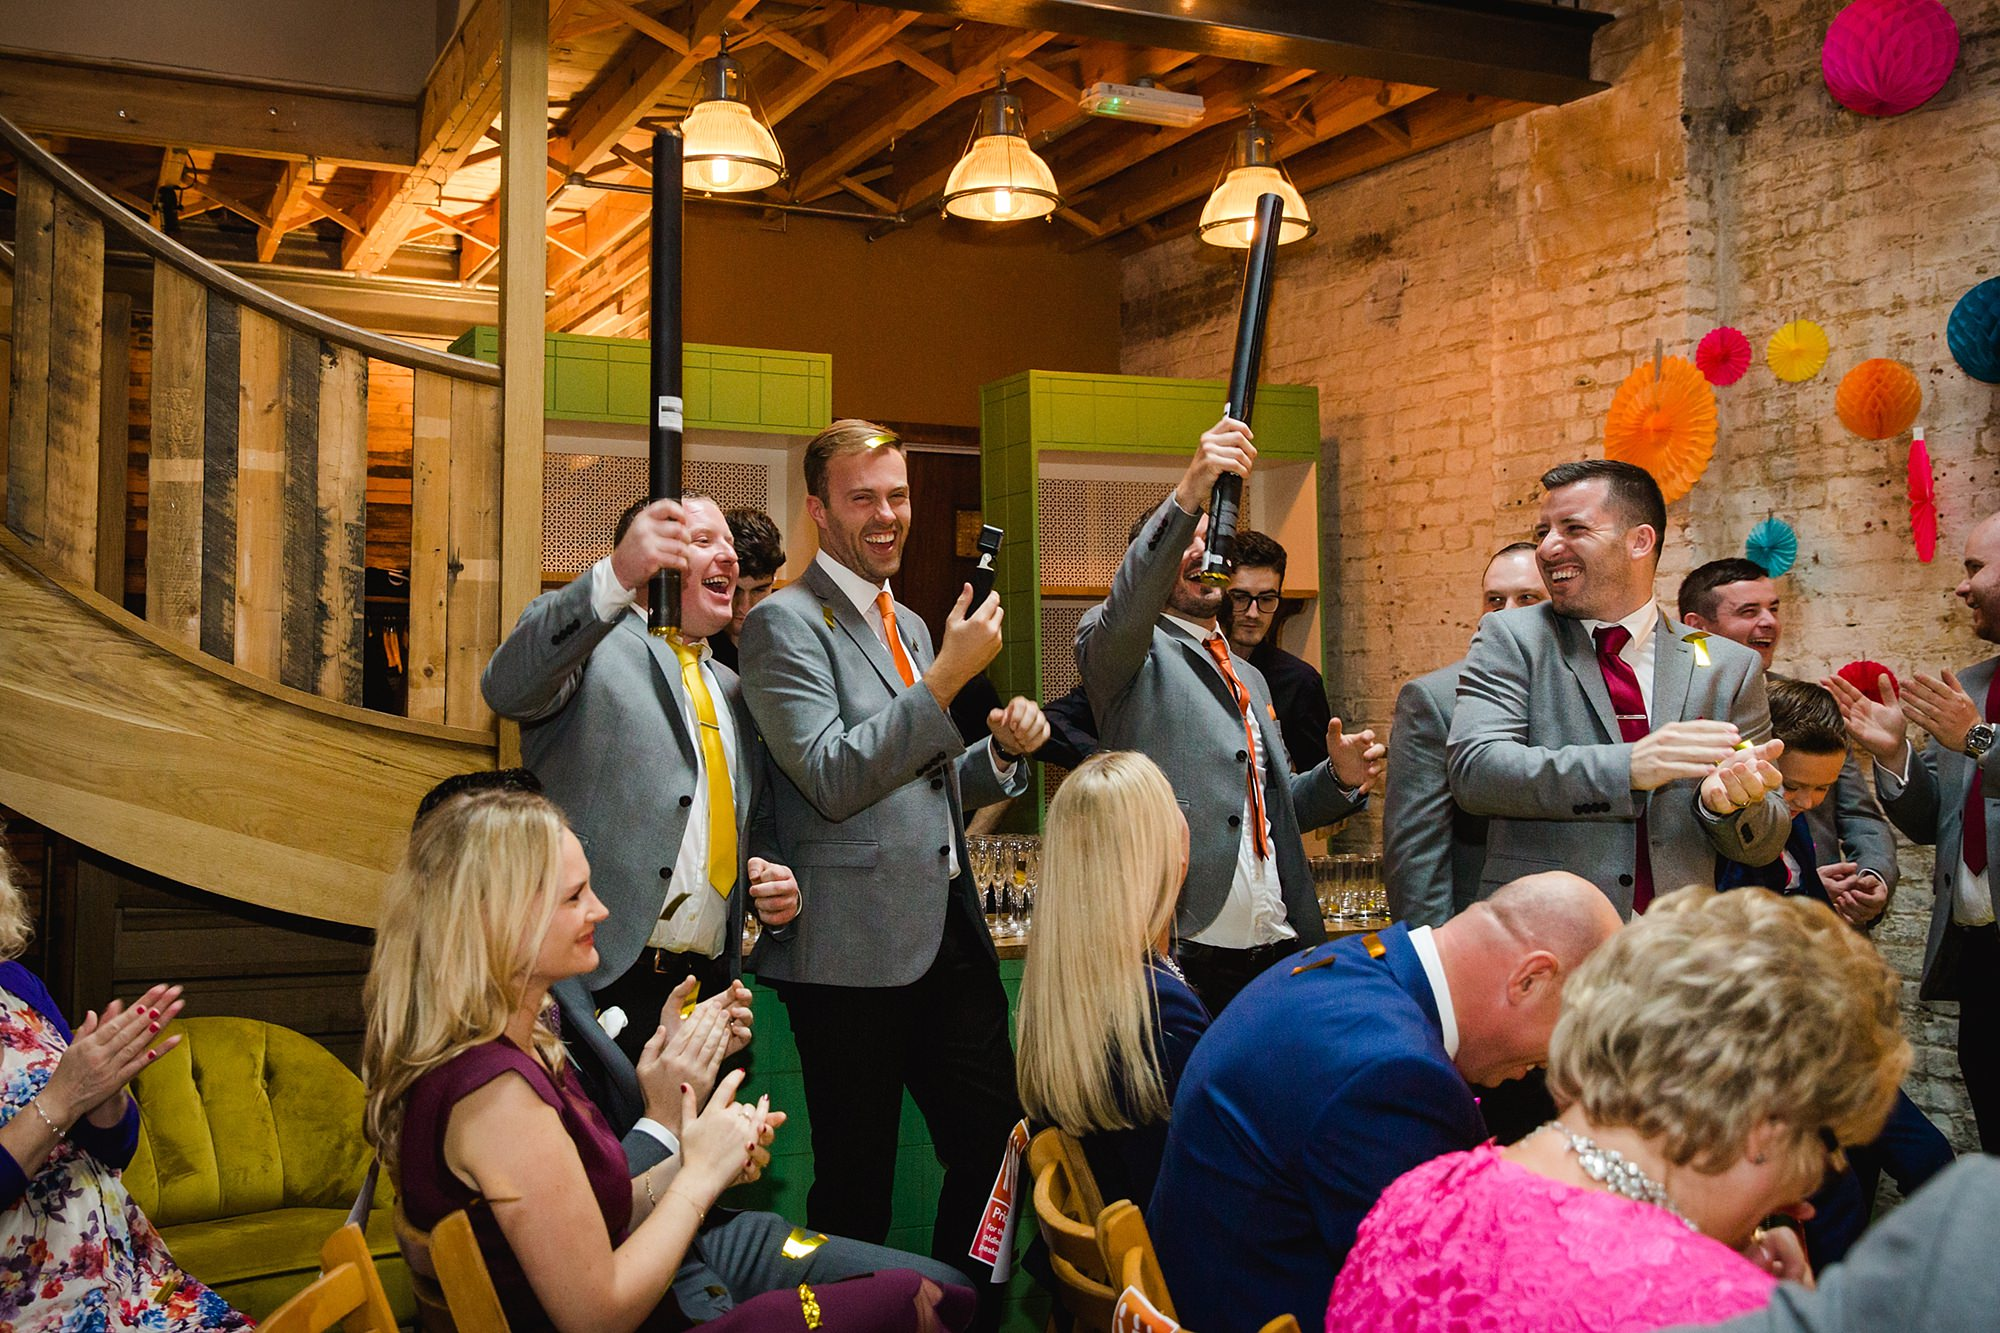 Fun London Wedding groomsmen cheering with confetti cannons